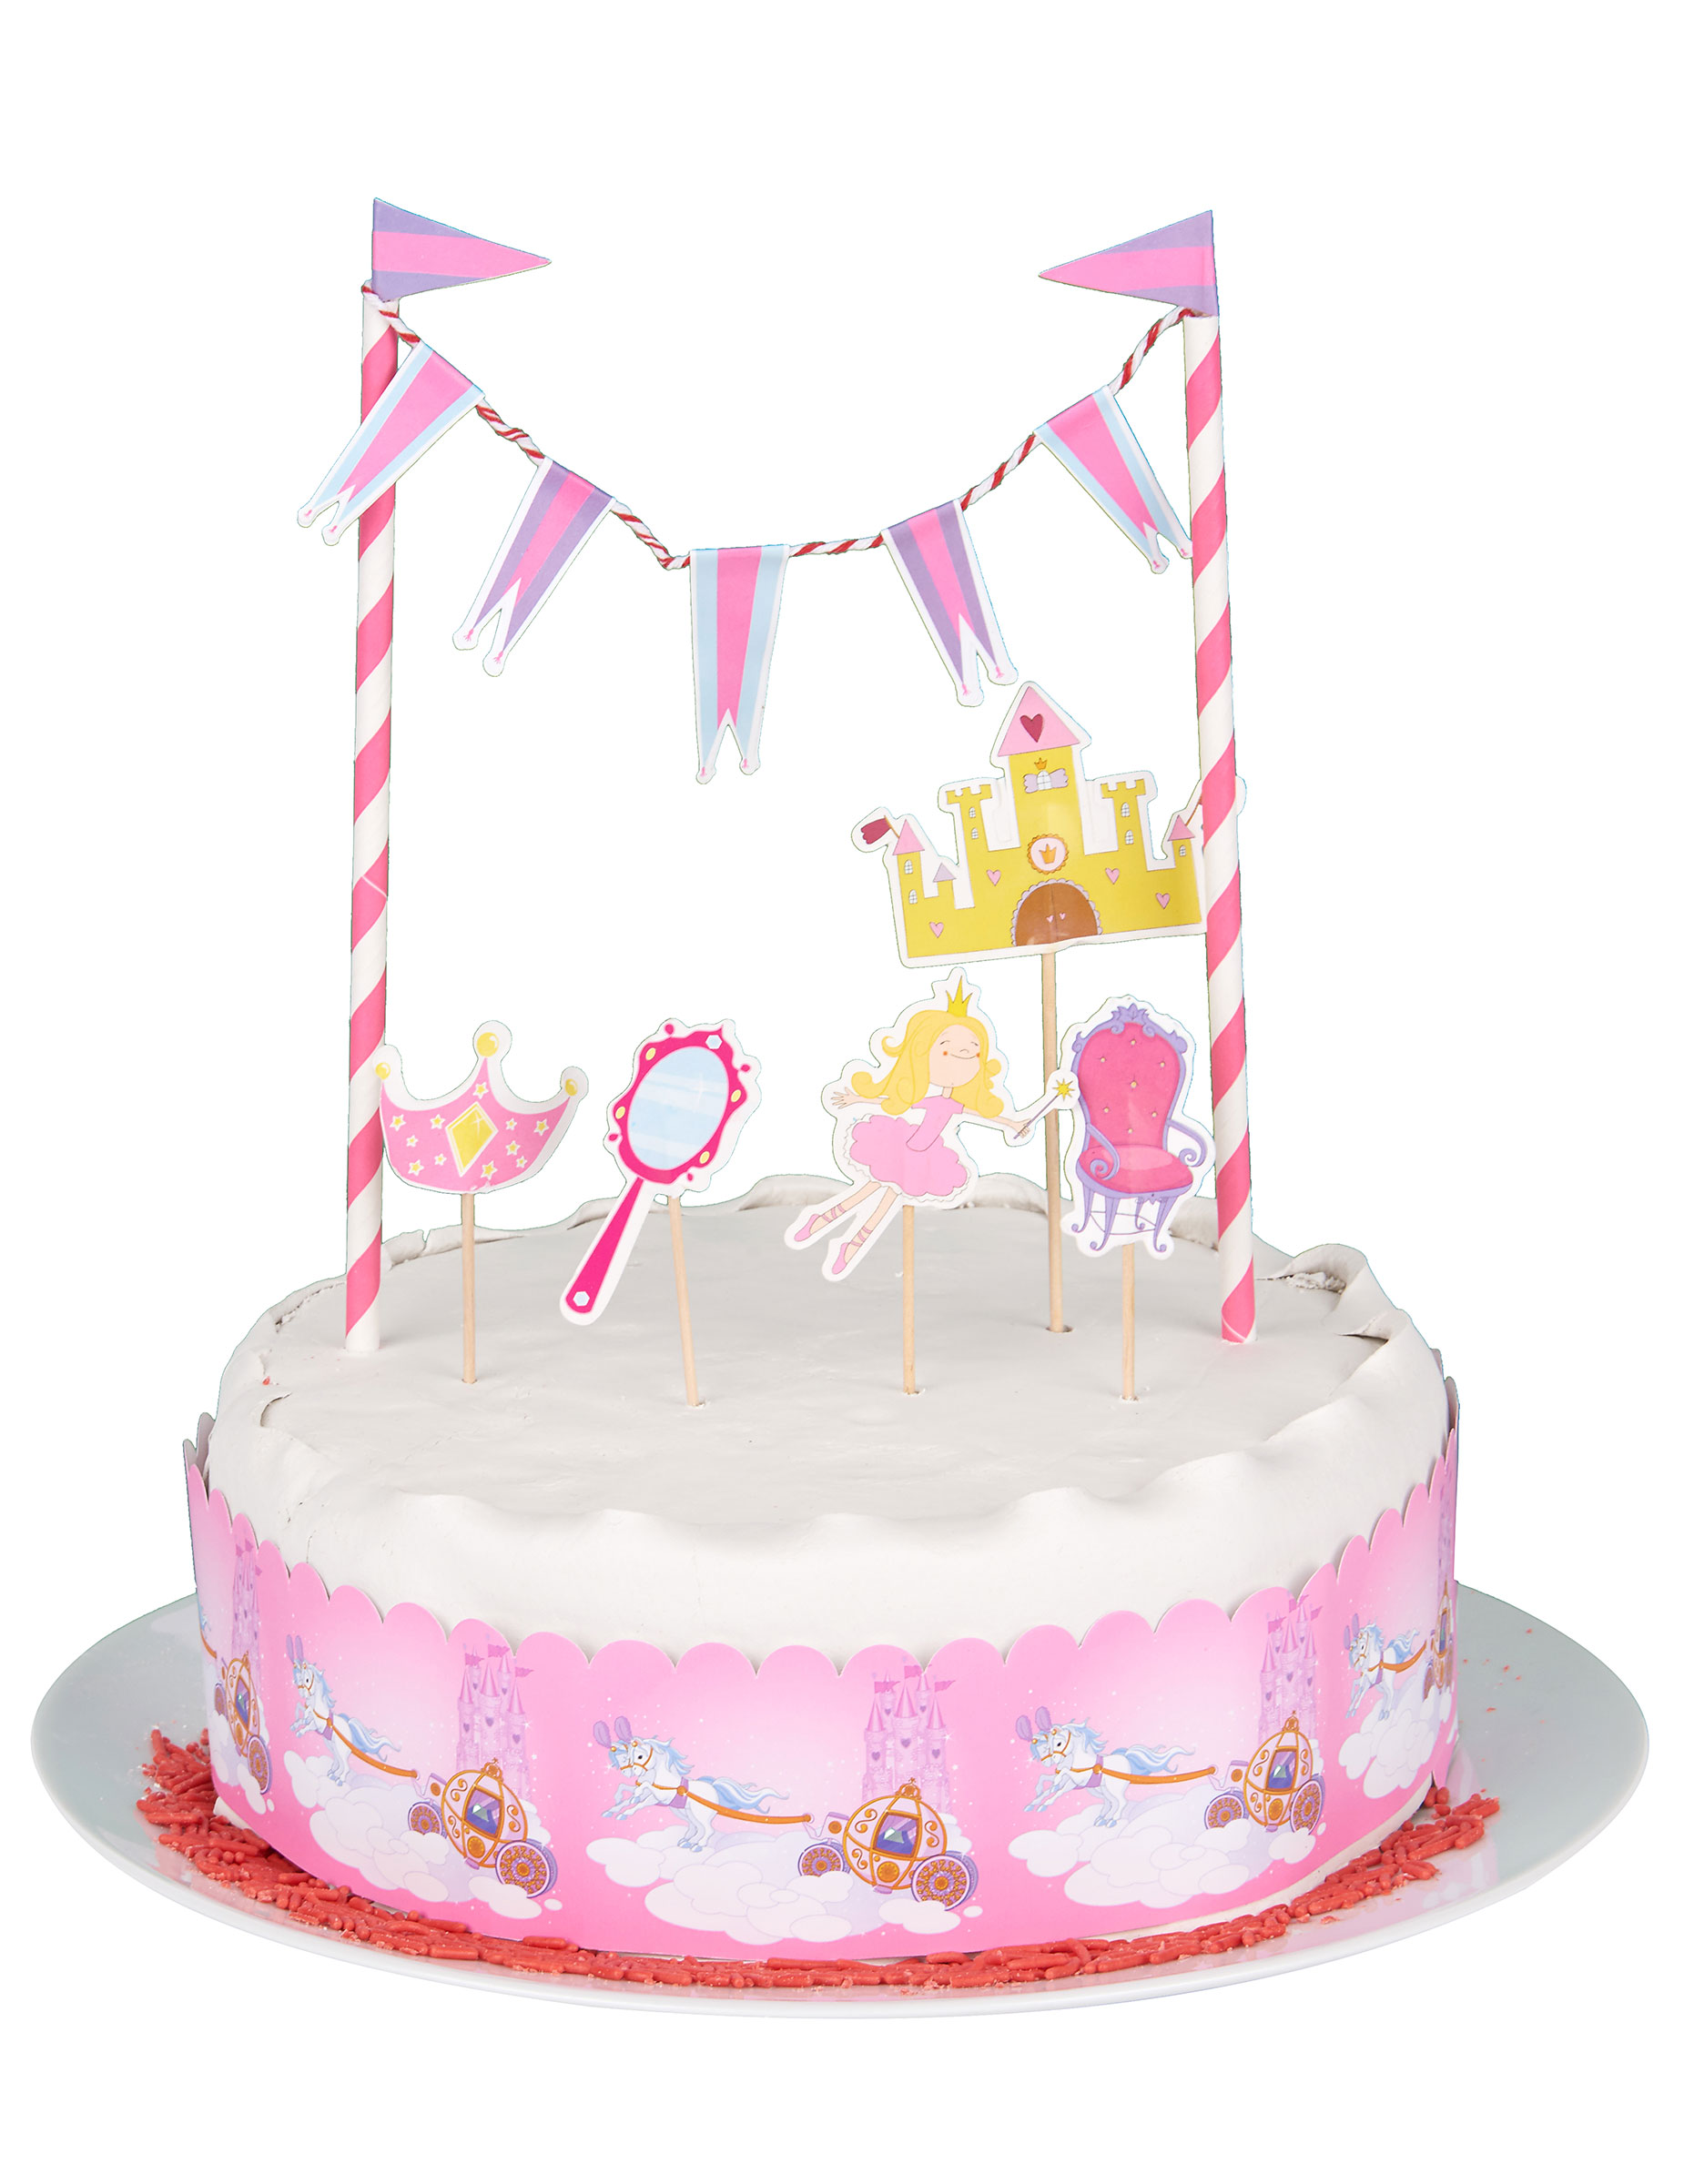 Gateau De Princesse Decoration Gateau Princesse